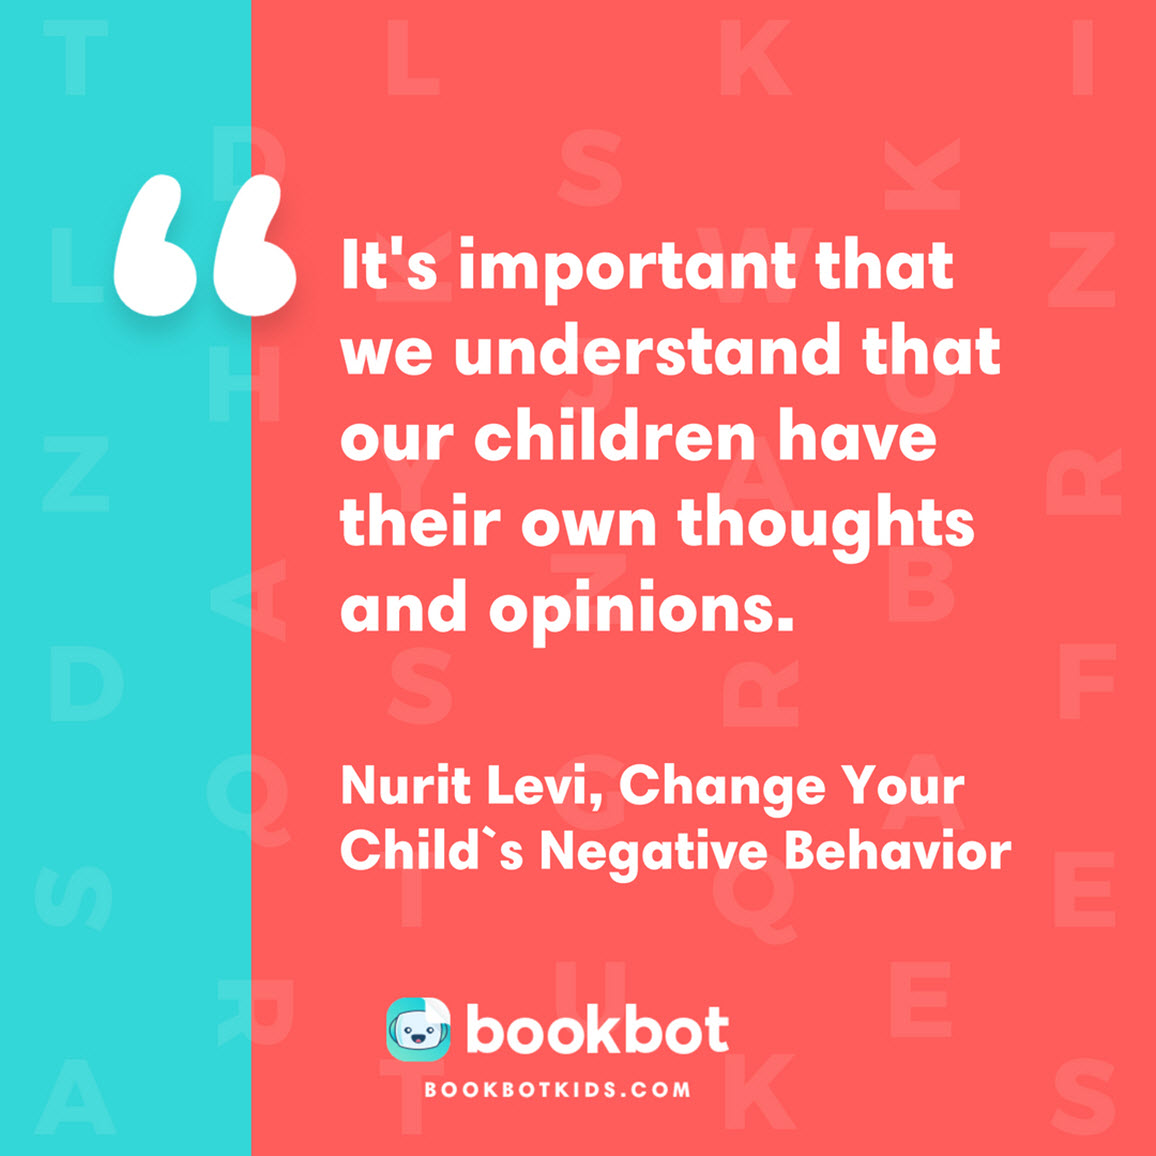 It's important that we understand that our children have their own thoughts and opinions. – Nurit Levi, Change Your Child`s Negative Behavior